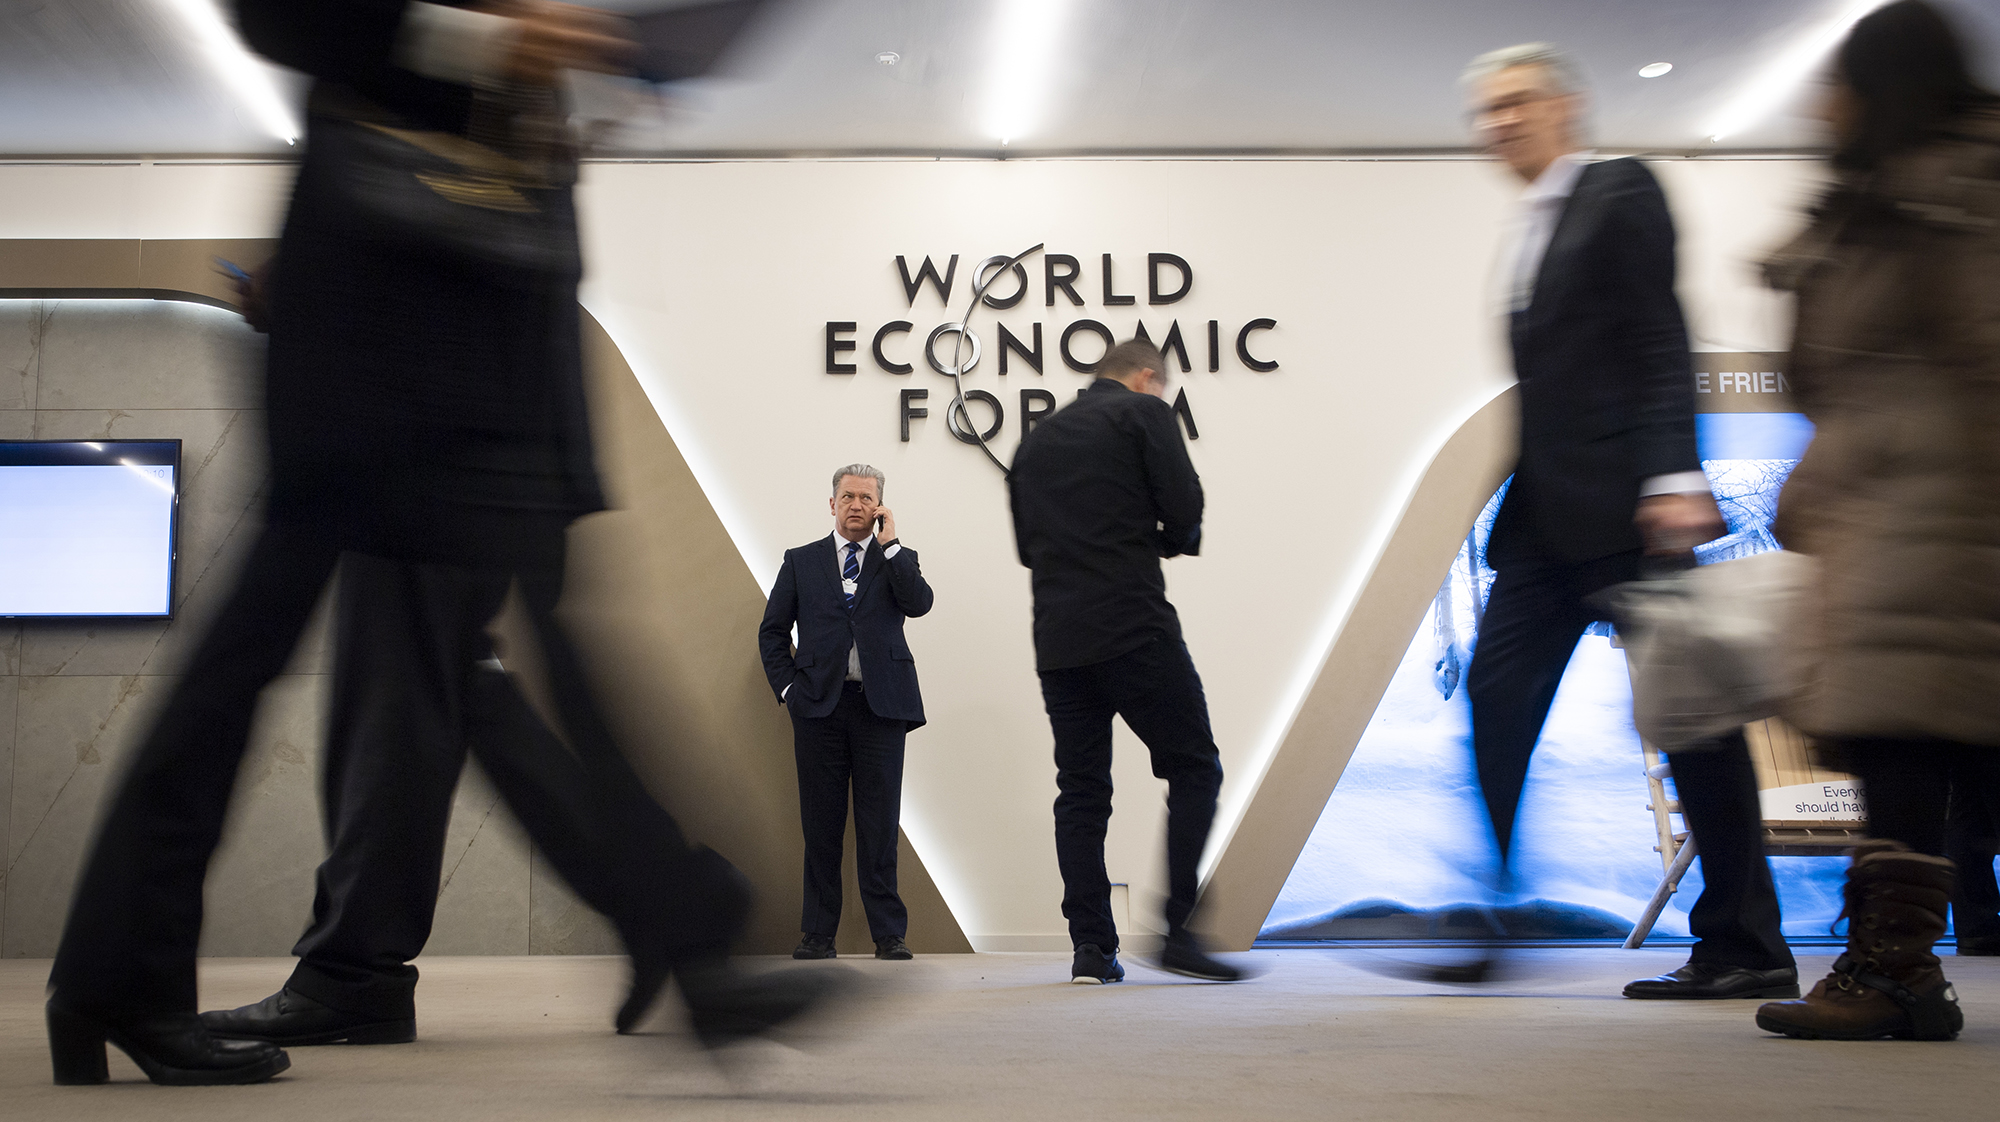 RIGHT OF REPLY: Davos is emerging as a space to engage with urgent issues, not just for socialising